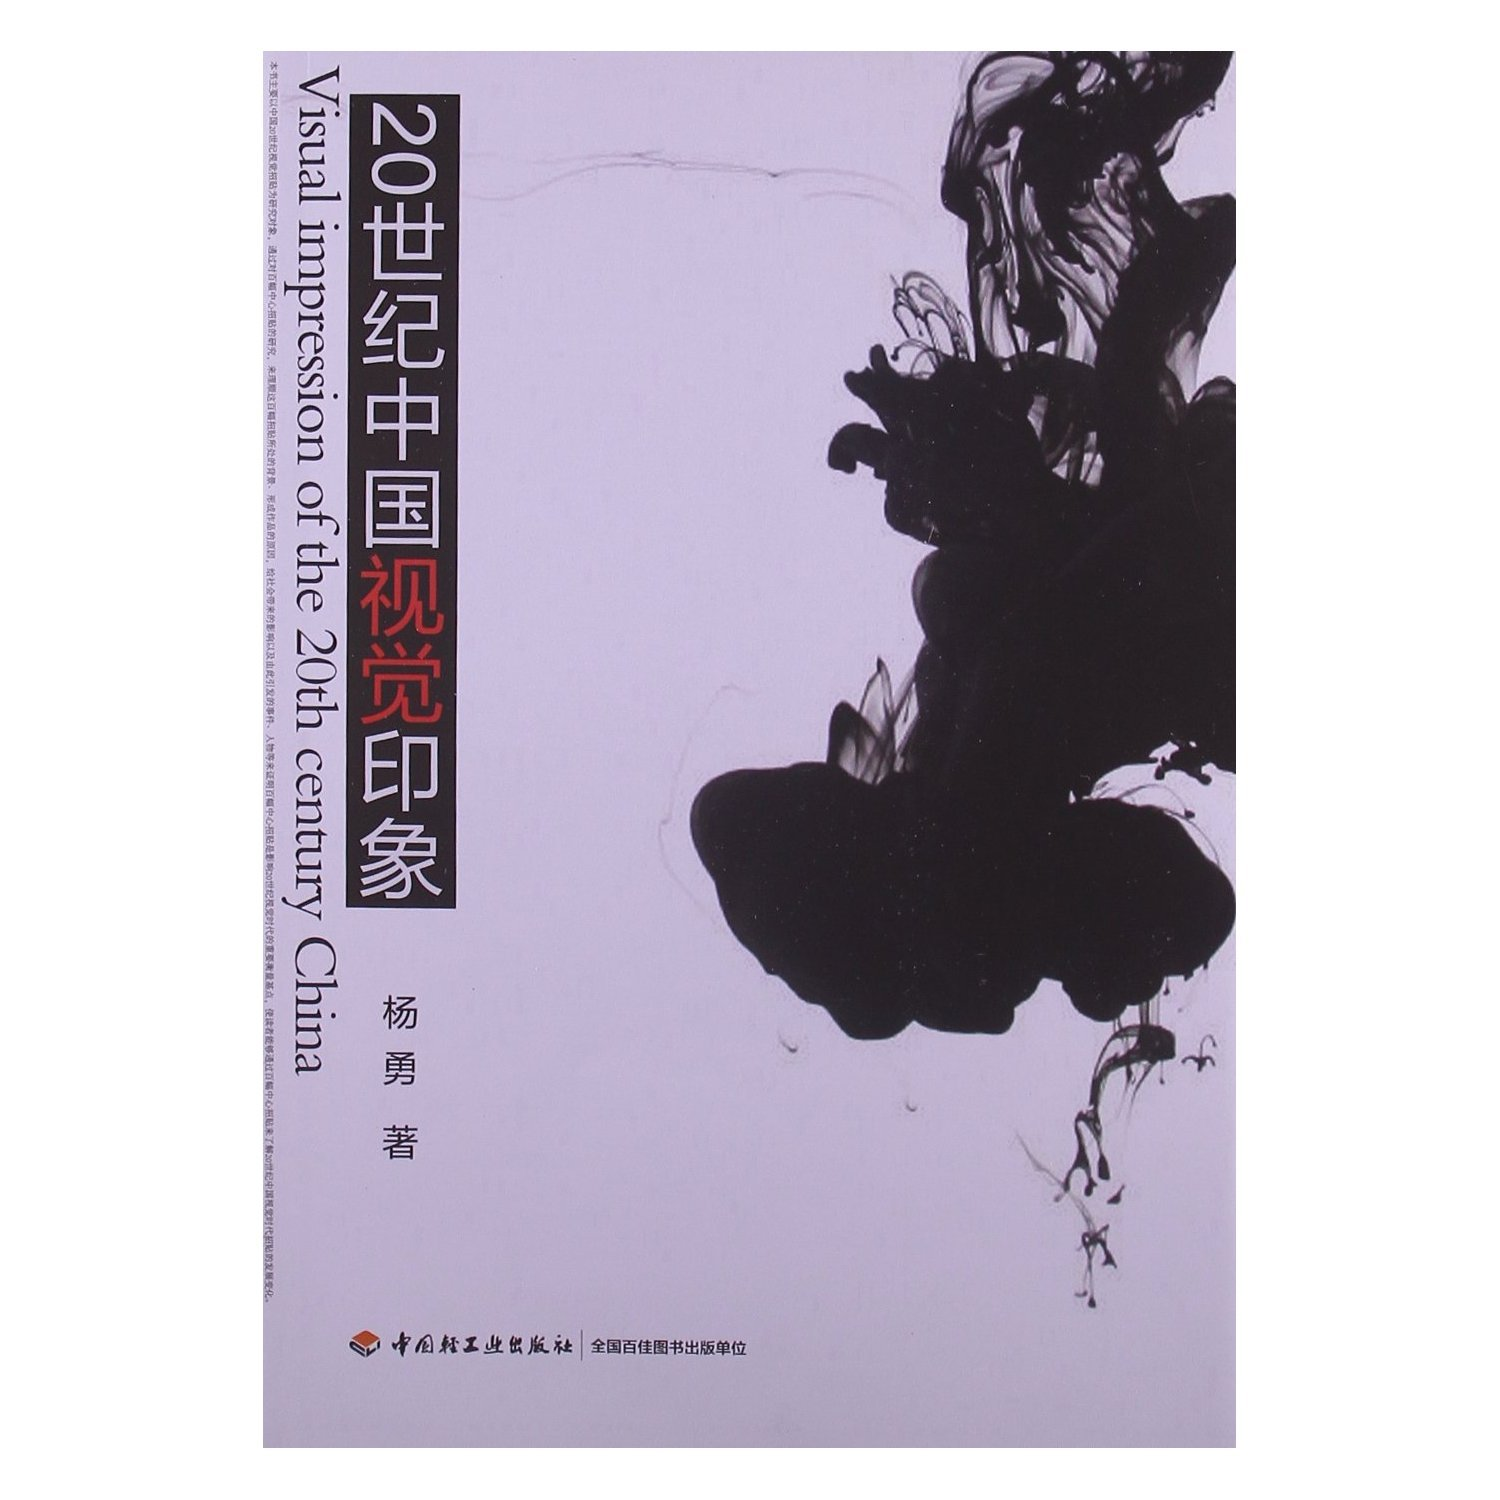 Download The Visual Impression of China in the 20th Century (Chinese Edition) ebook